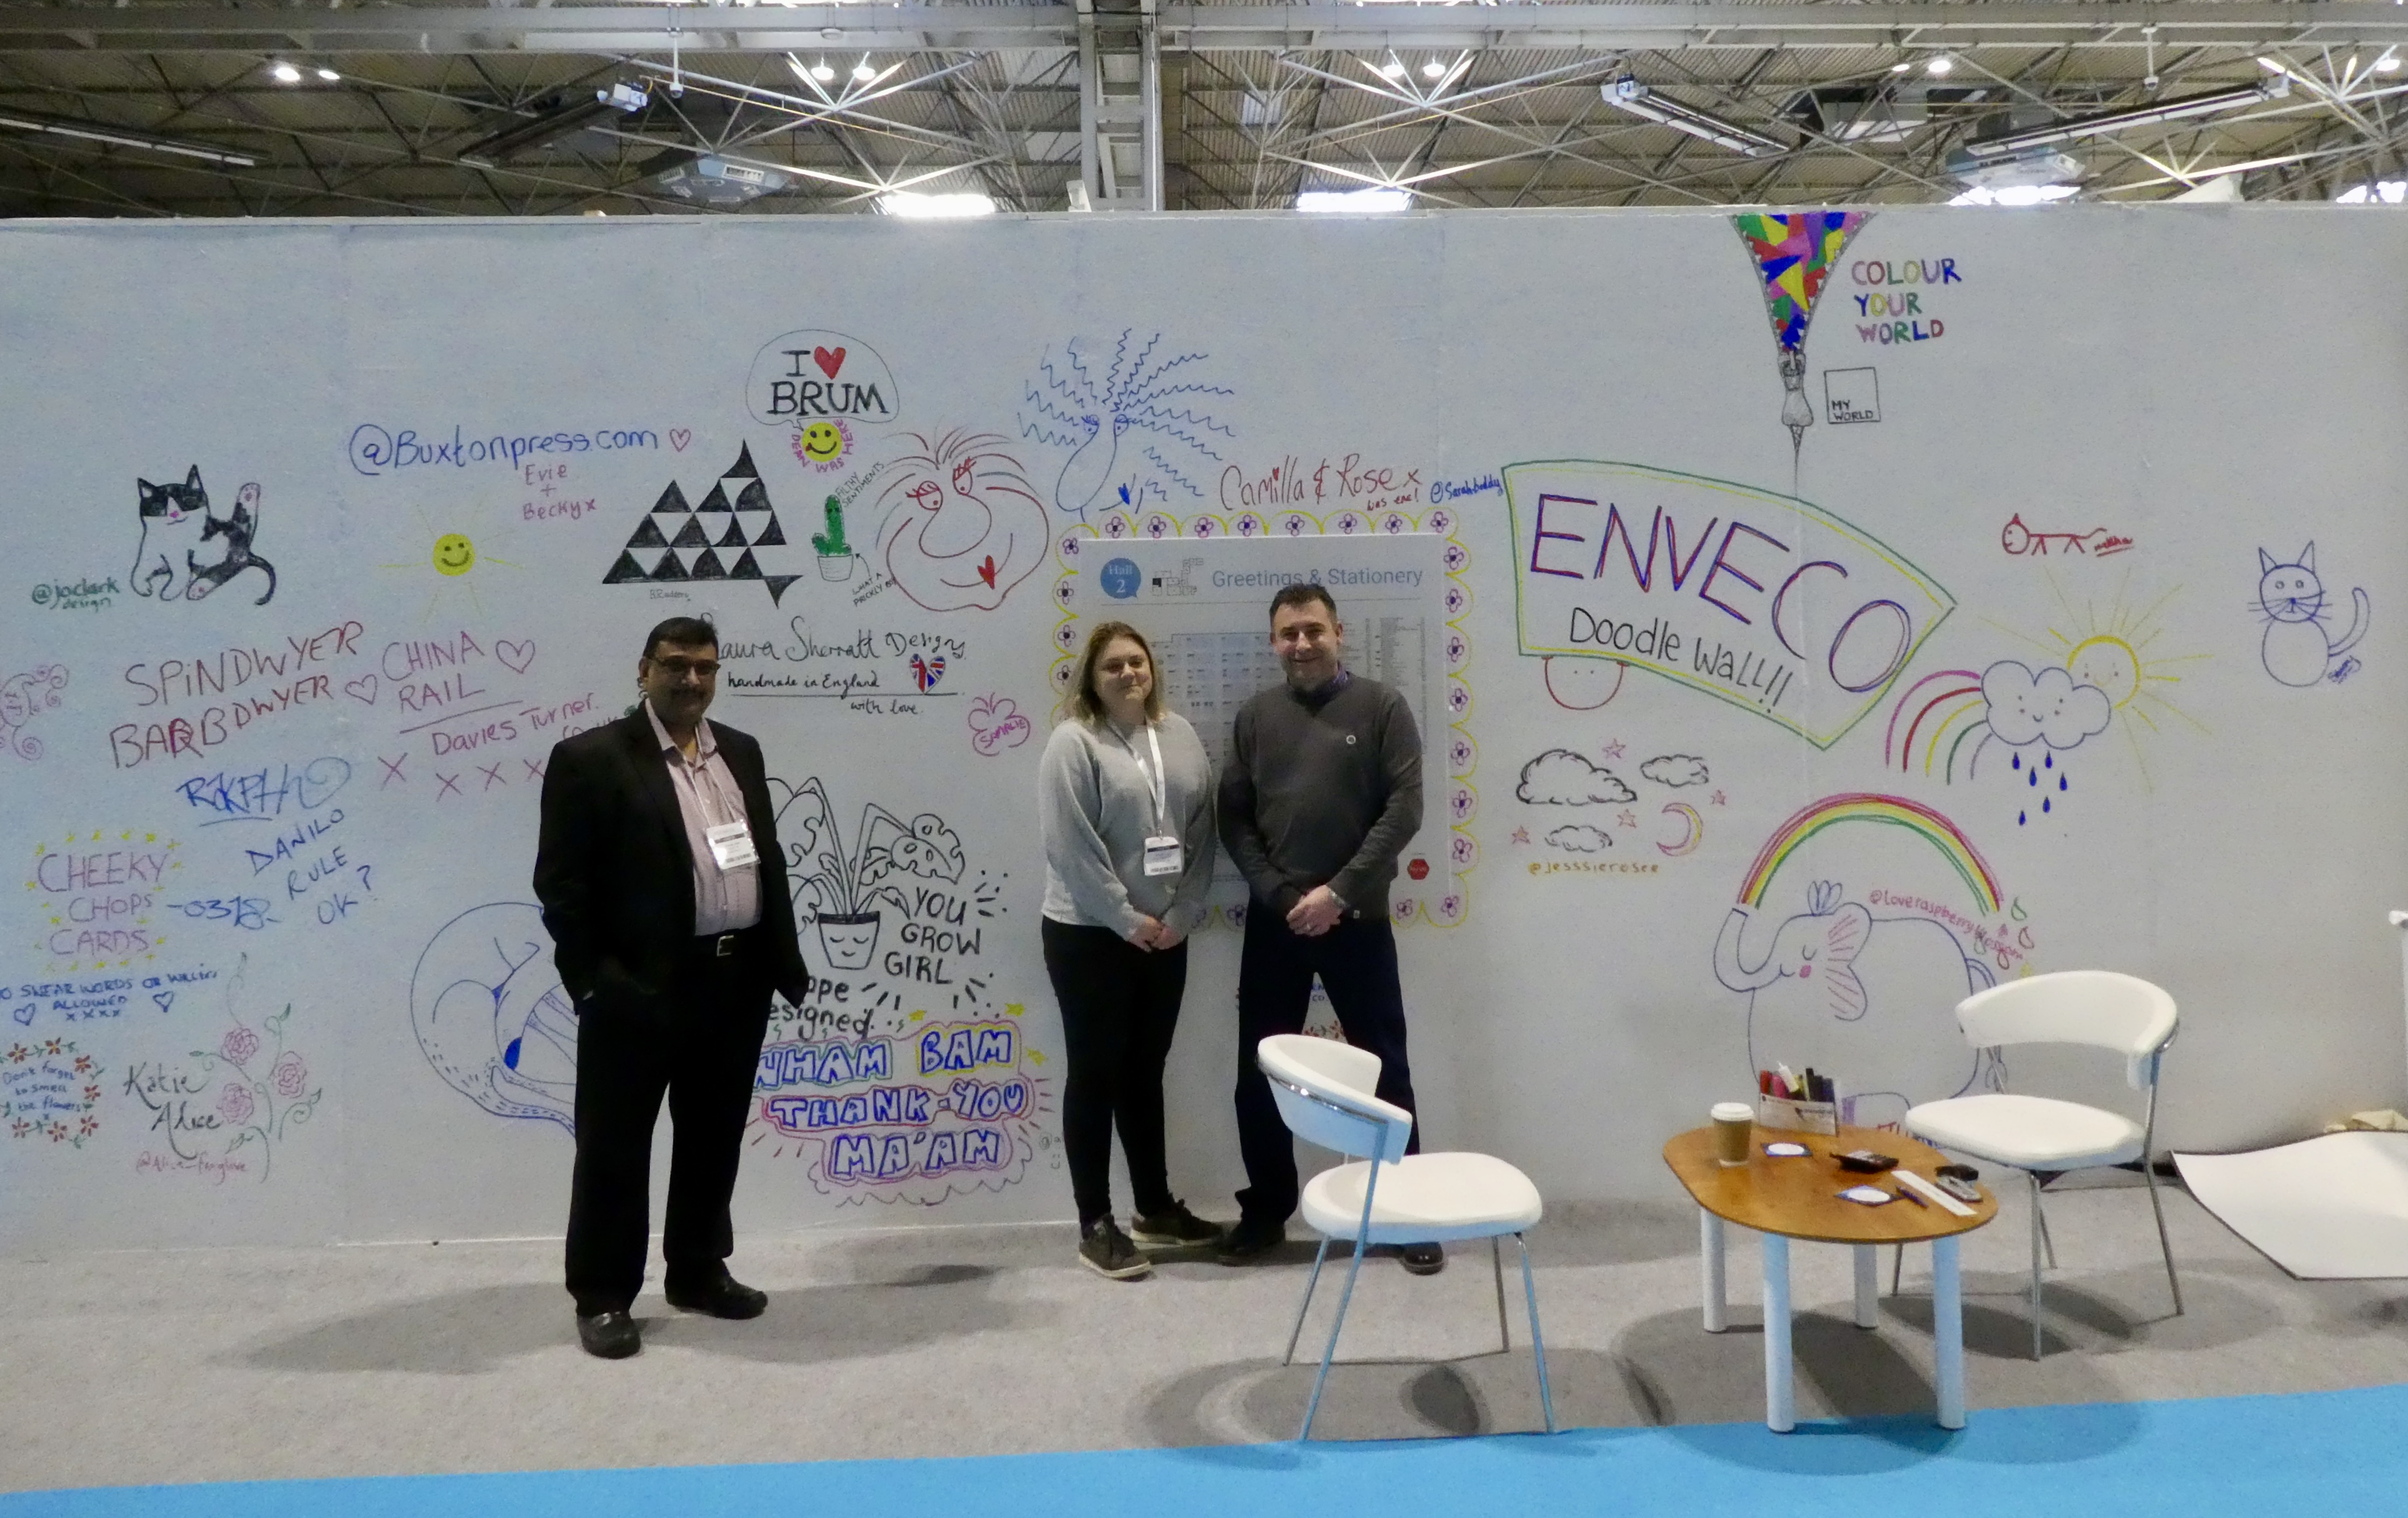 Above: Enveco made the most of the 'blank canvas' next to its stand, encouraging publisher's to be creative. (Left-right) Enveco's owner Piyush Shah, office manager Stacey Lee and sales director John Jones.